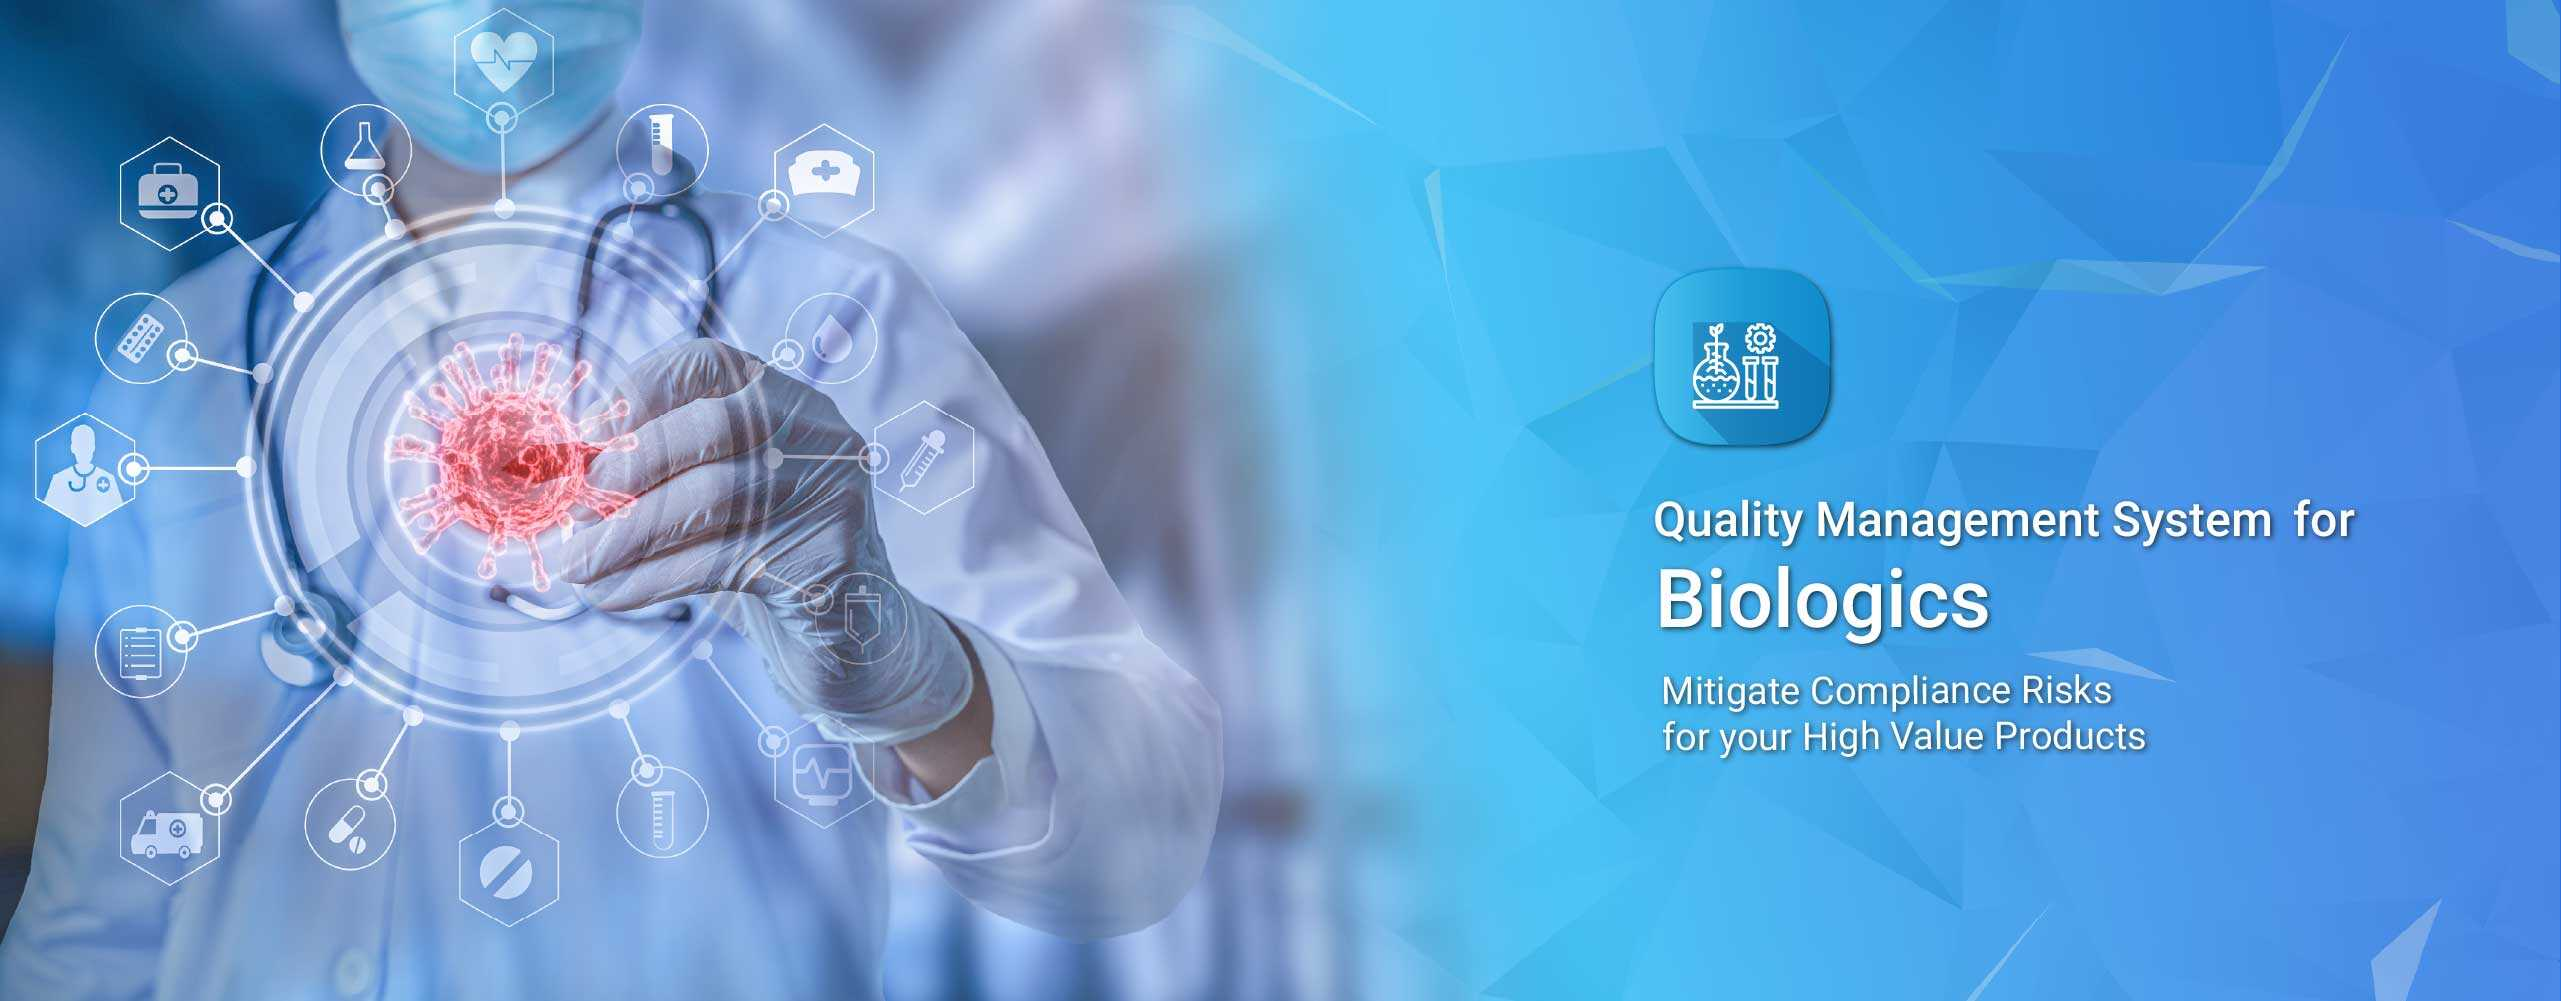 Quality Management Software for Biologics Industry